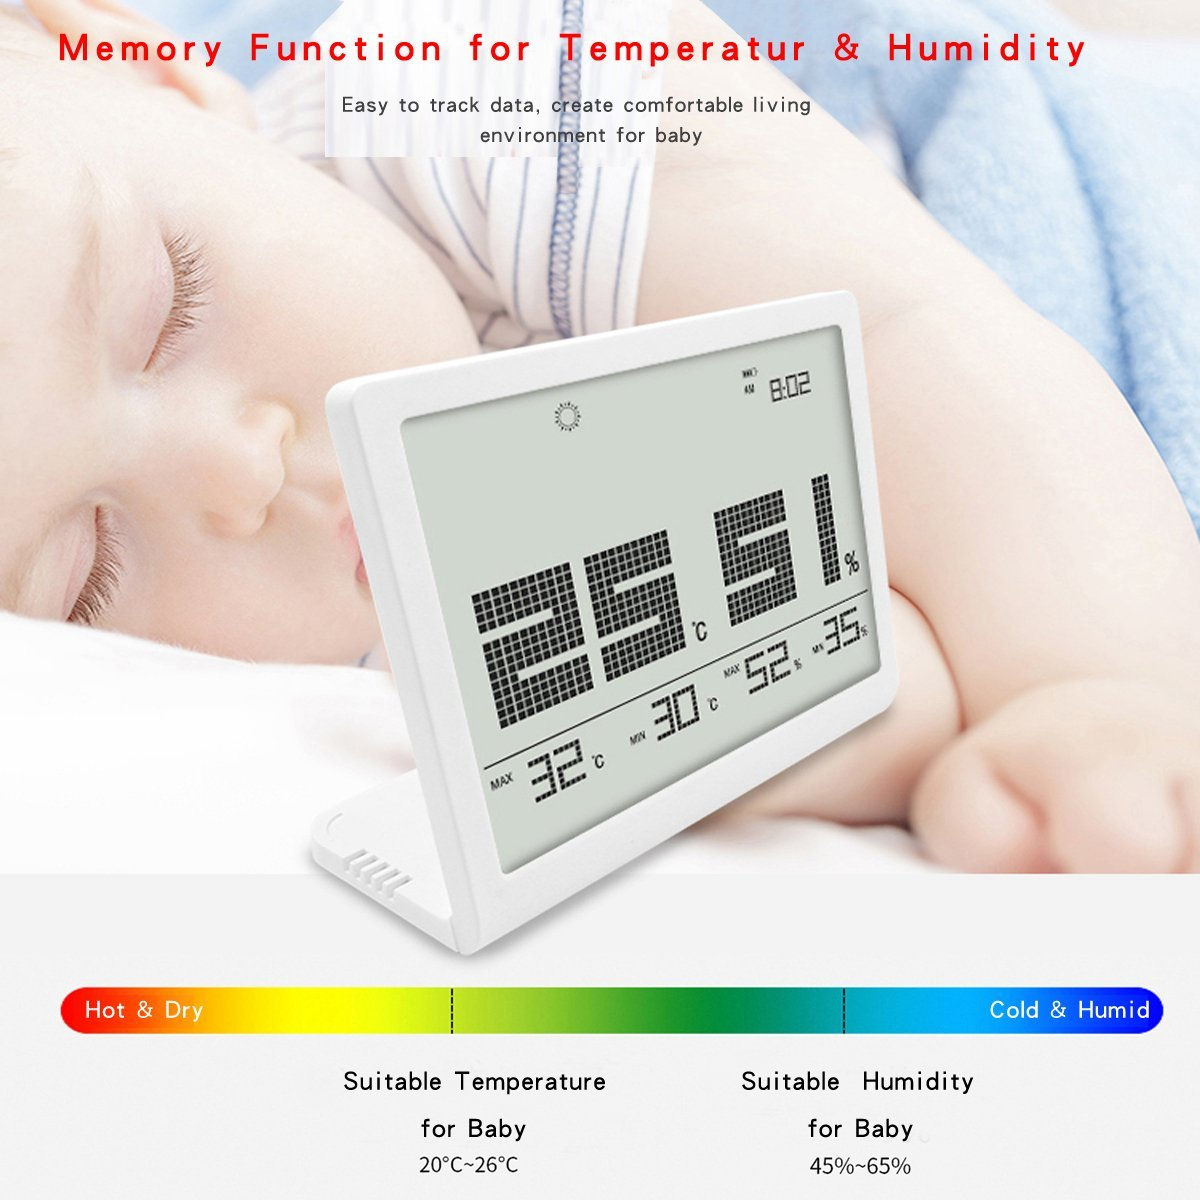 CENTRY HARVEST Digital-Hygrometer-Thermometer,Humidity Monitor with Indoor Thermometer, Digital Hygrometer and Humidity Gauge Indicator